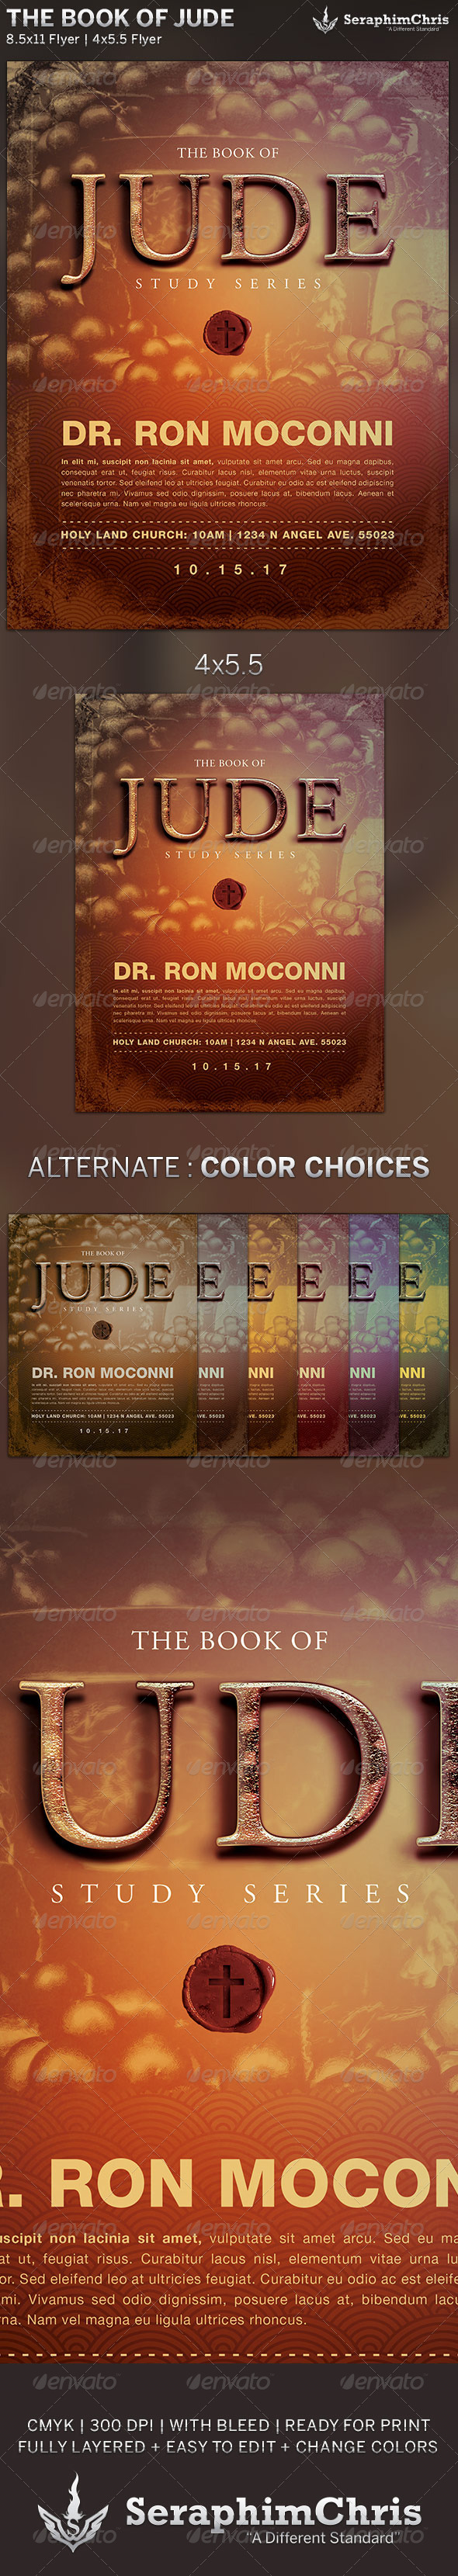 GraphicRiver The Book of Jude Church Flyer Template 5891277